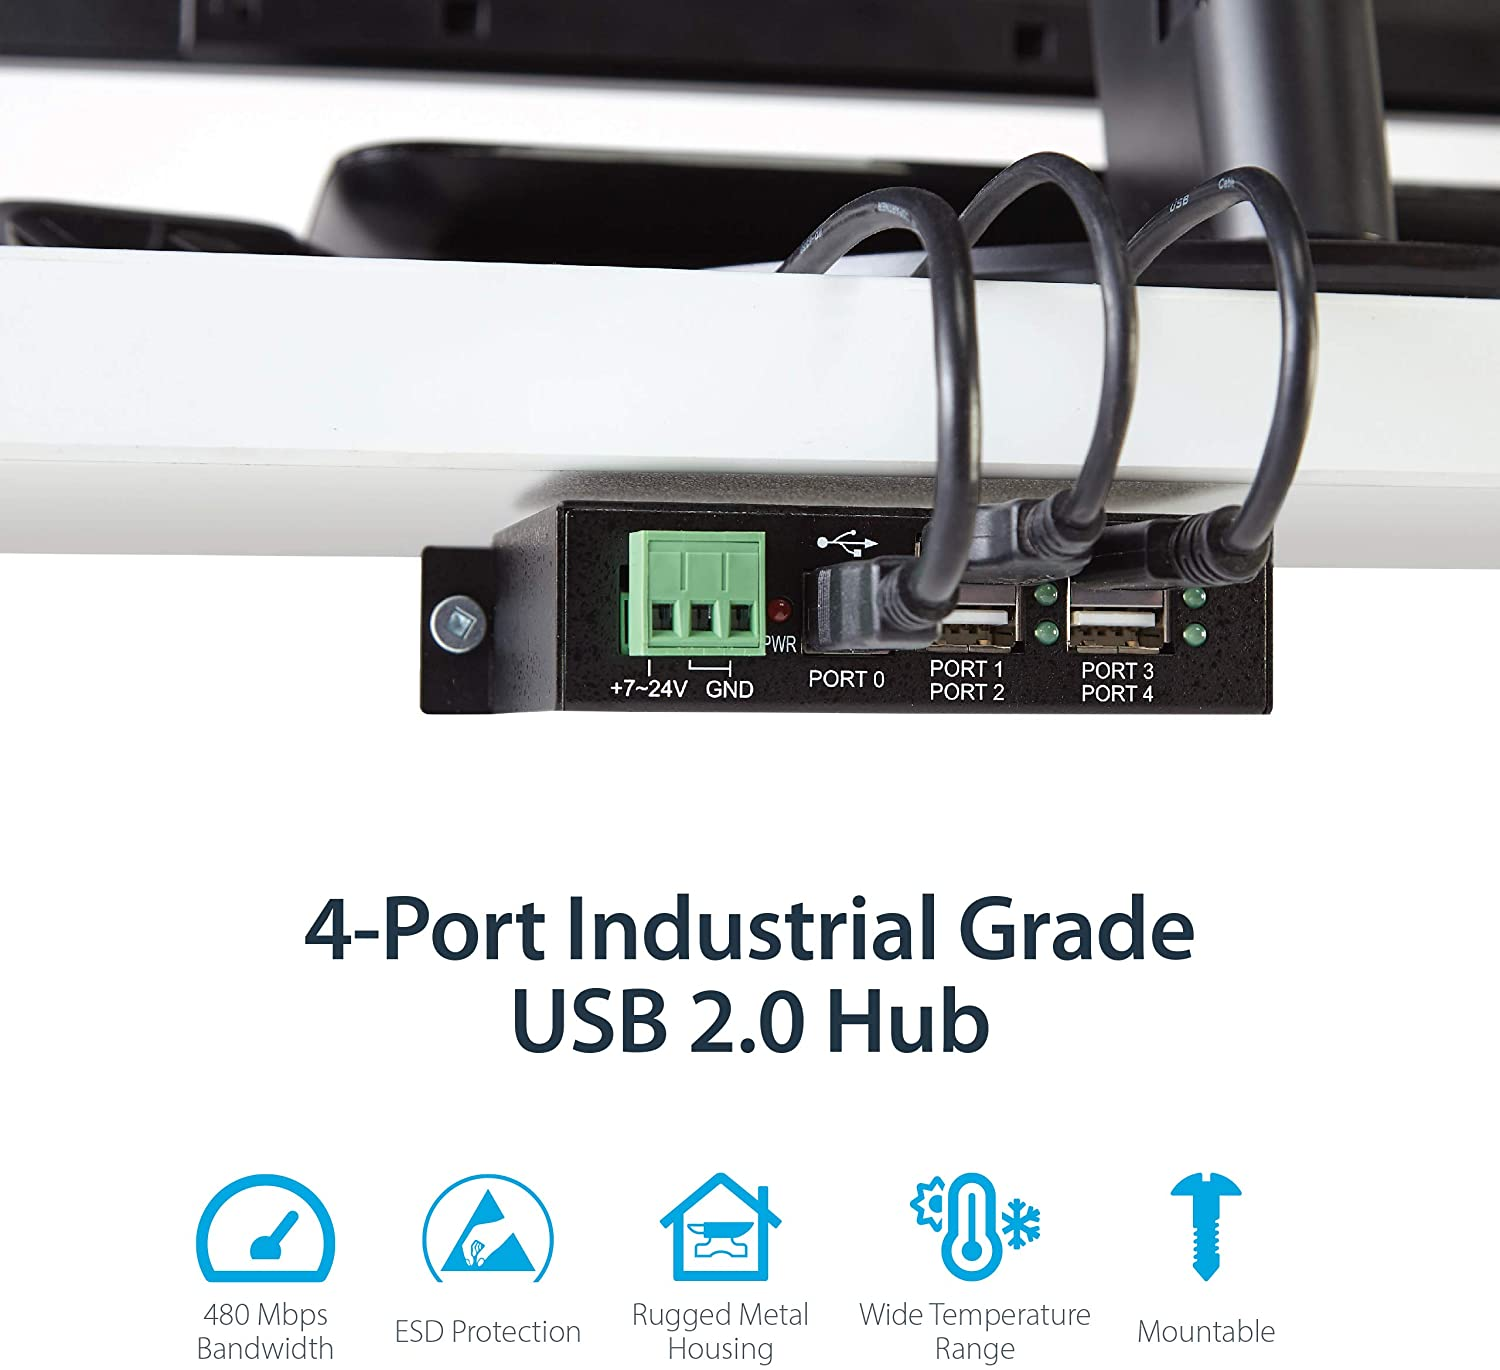 4-Port Industrial USB 2.0 Hub w/ ESD Protection Mountable Multiport Hub